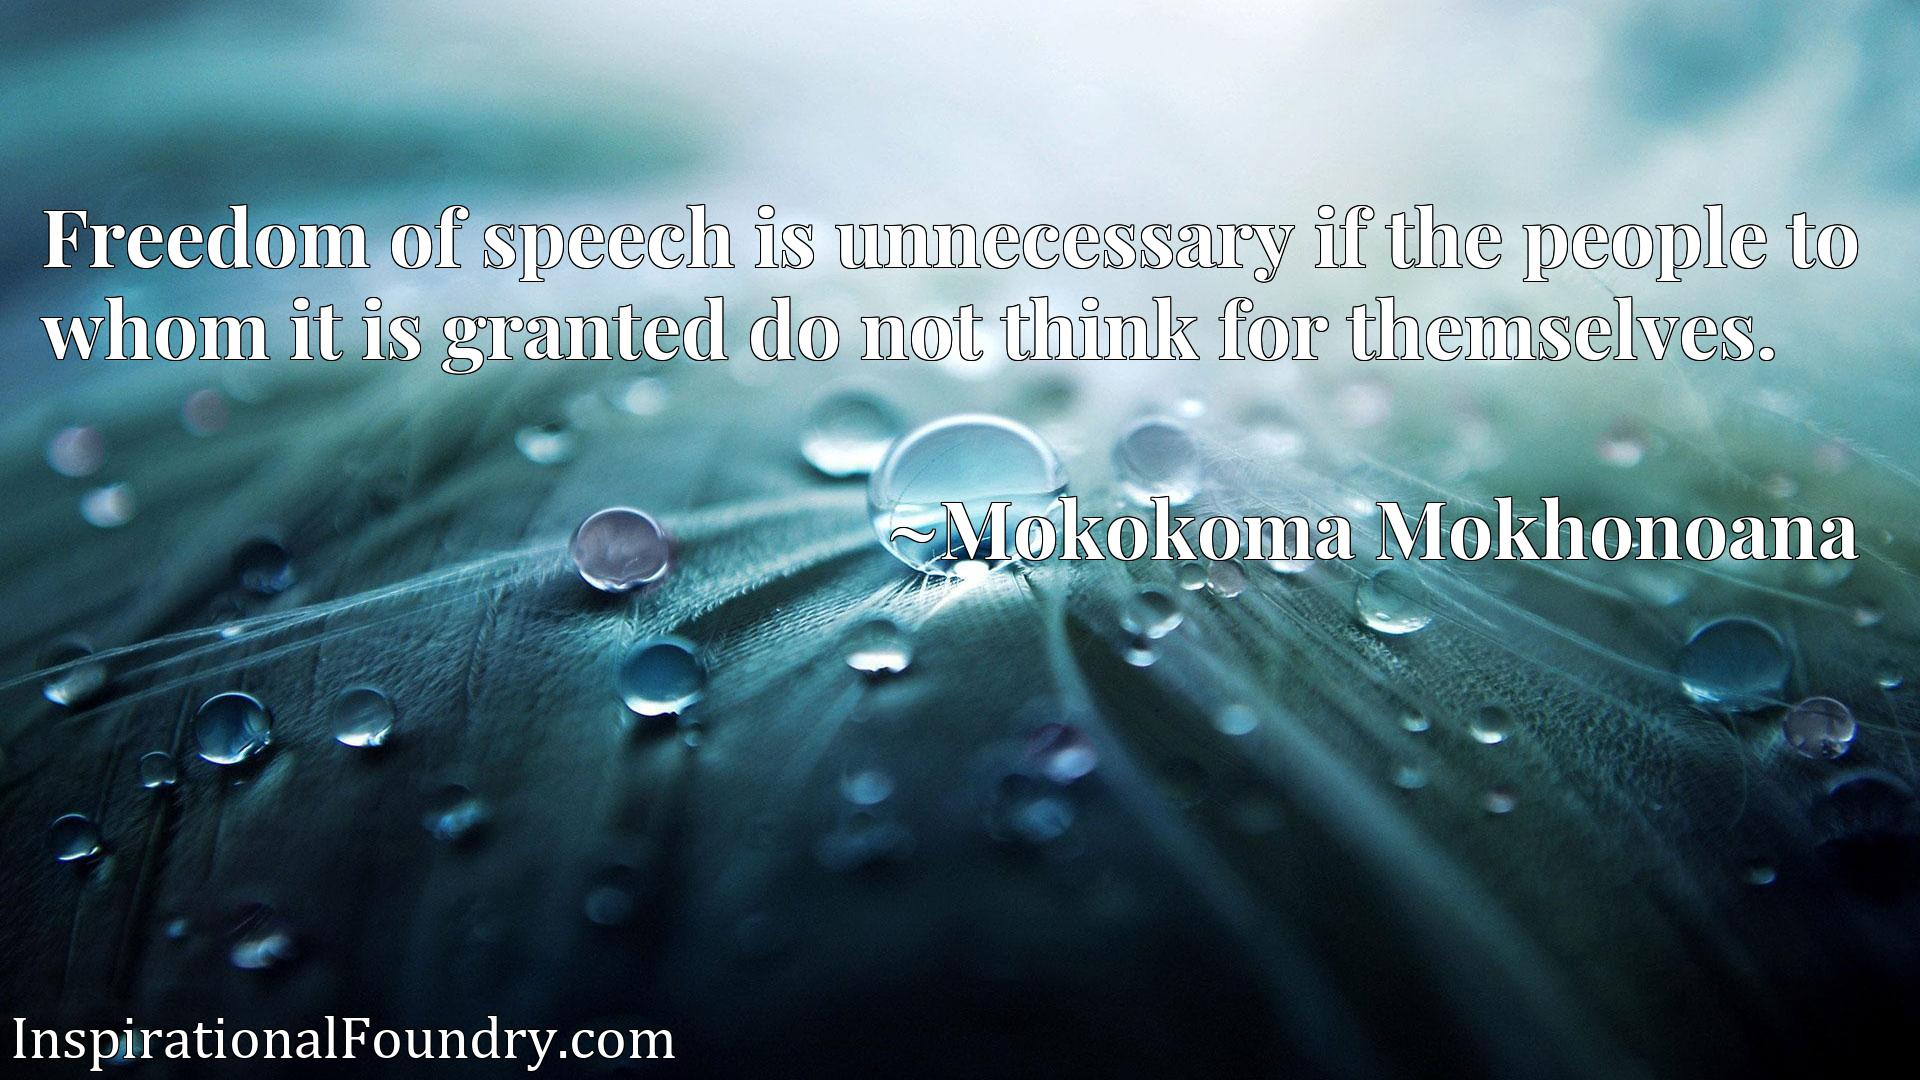 Freedom of speech is unnecessary if the people to whom it is granted do not think for themselves.